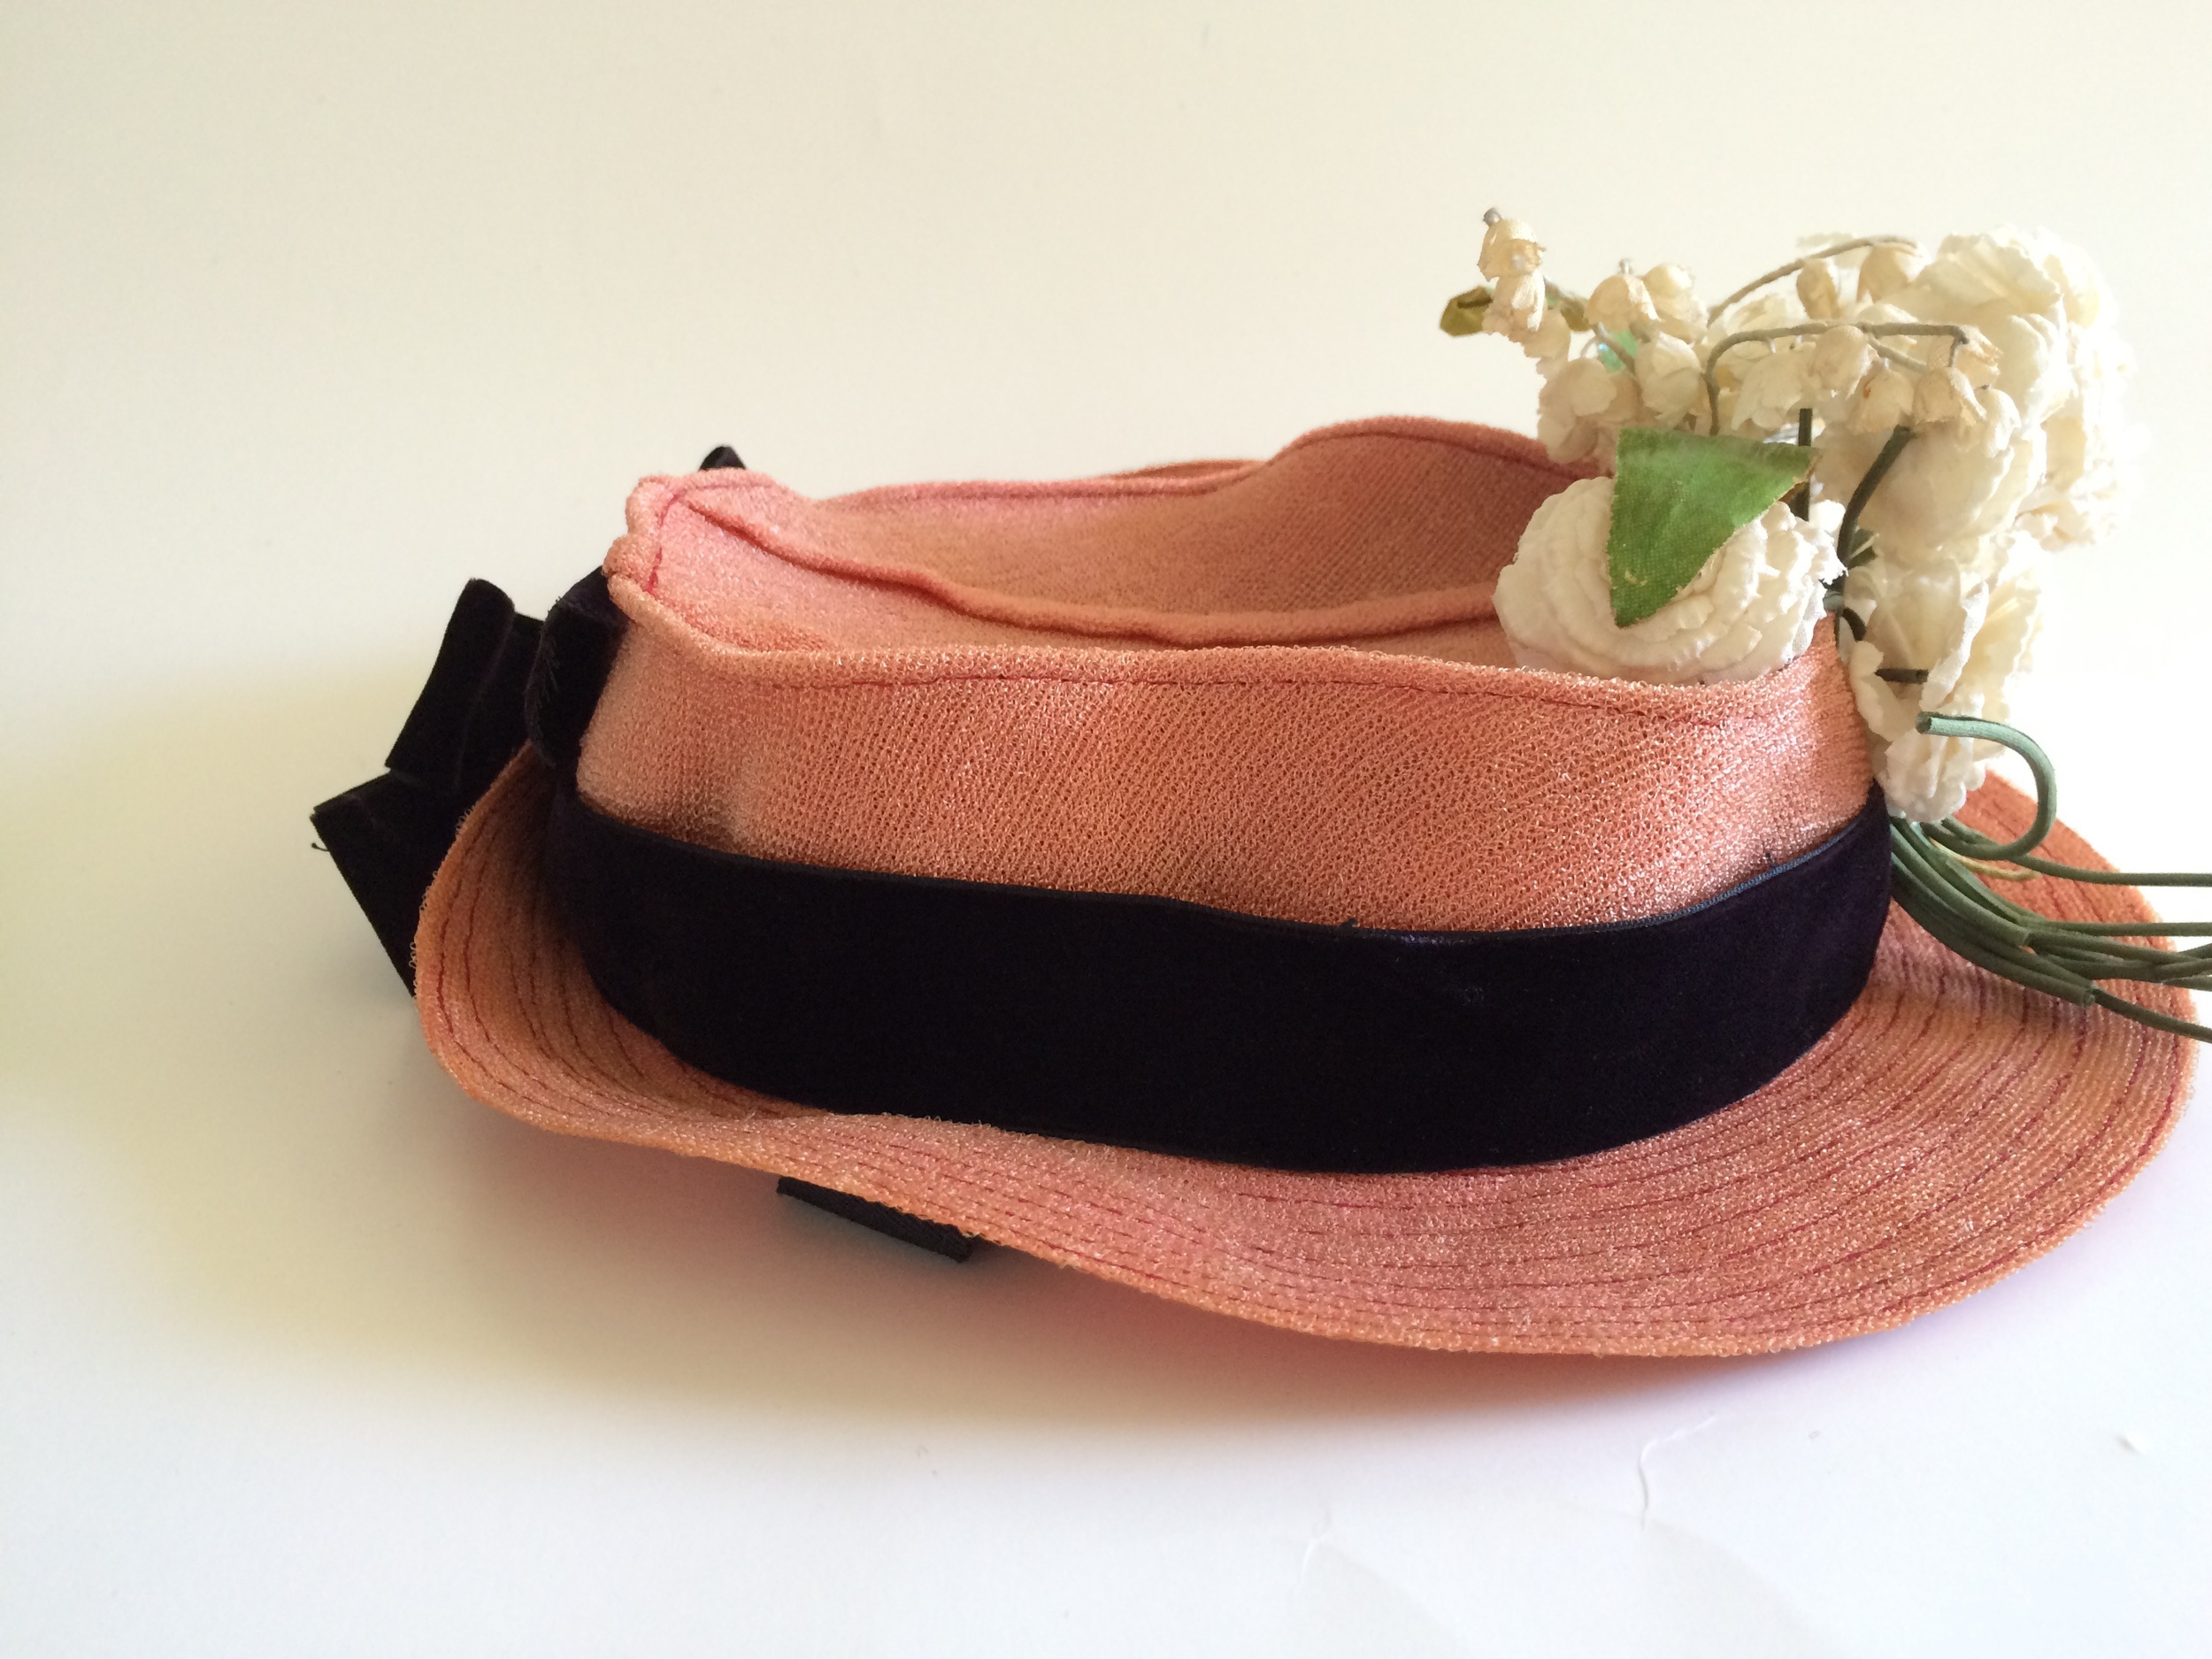 Fantastic vintage pink hat from the 1930s or 1940s with a velvet bow and silk flowers.